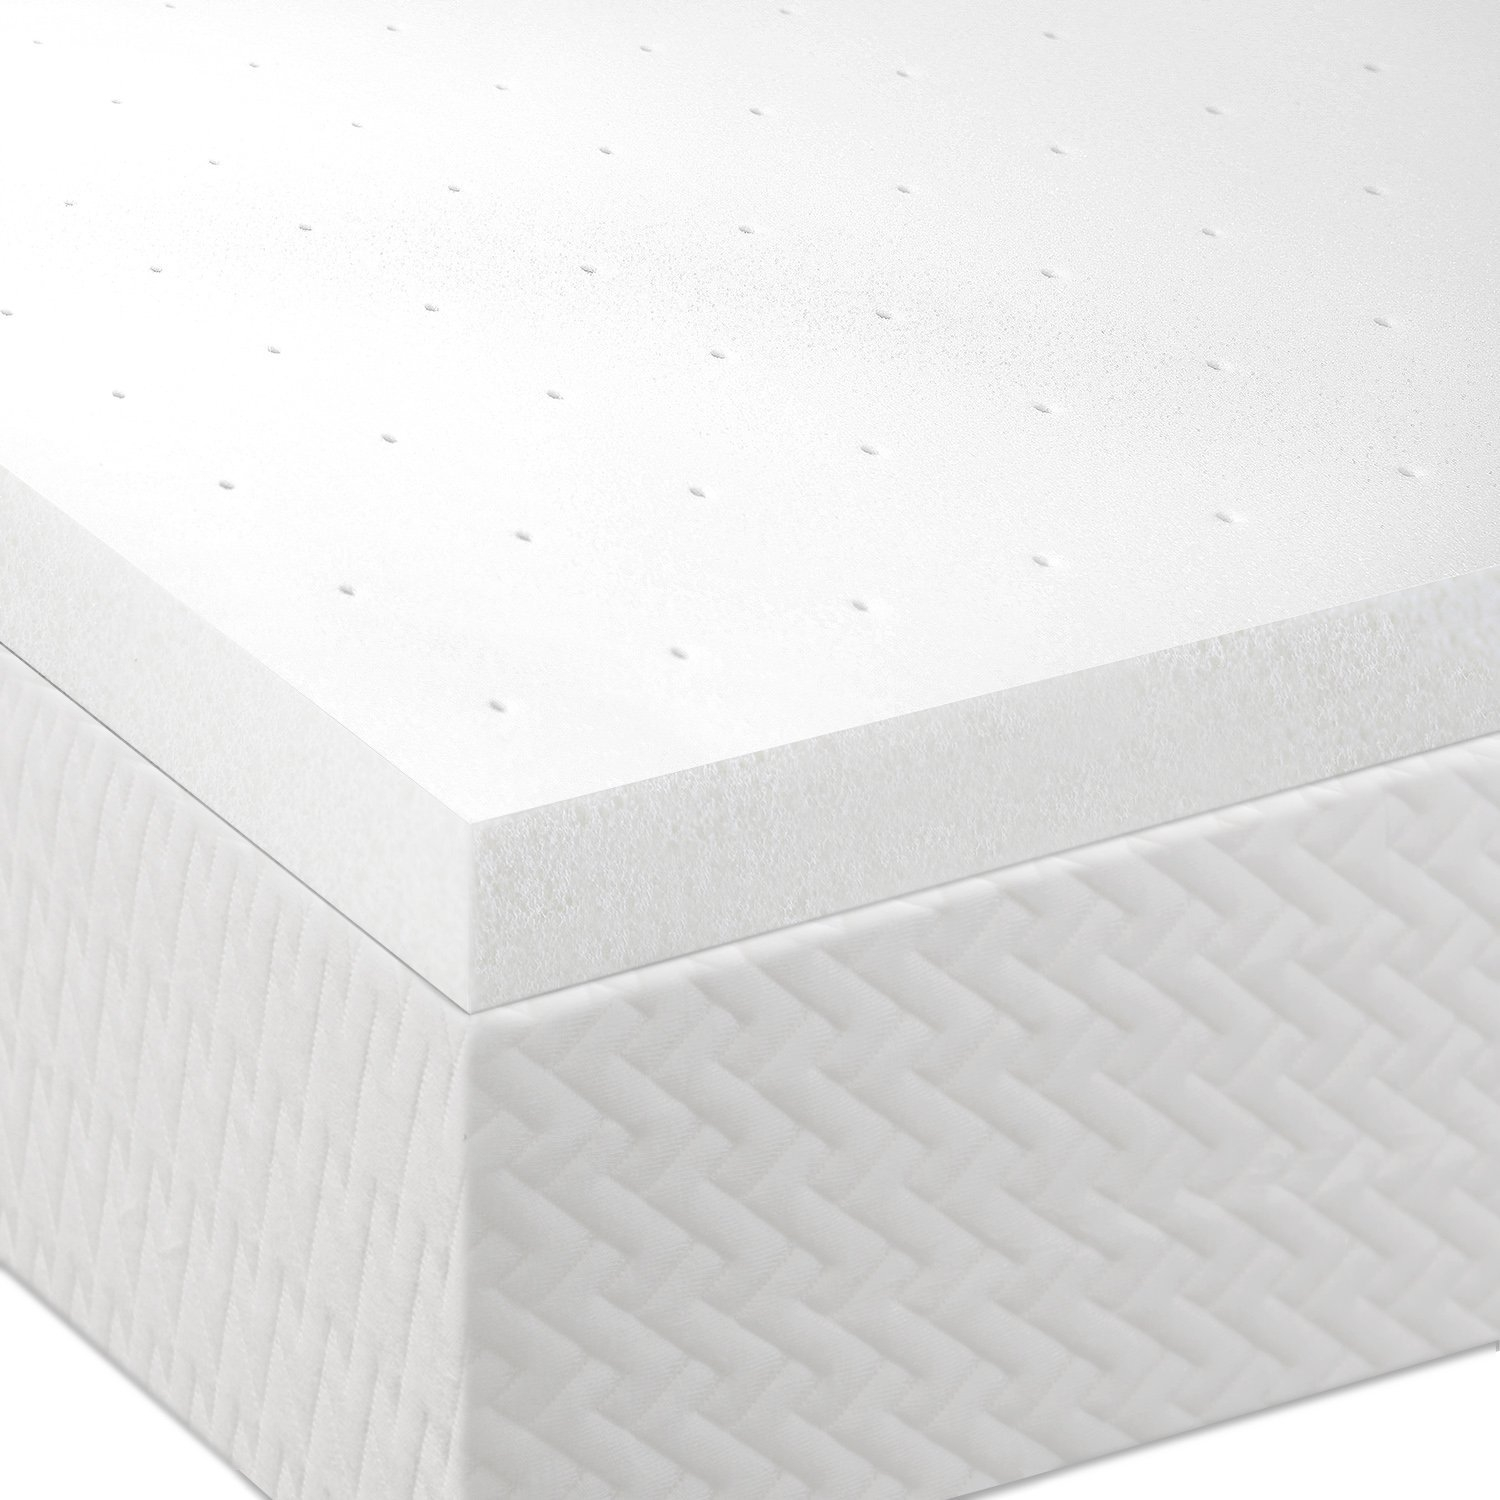 Want a way to bring new life to your mattress without killing your wallet? This Queen size 2-inch Thick Memory Foam Mattress Topper is the perfect solution because it will give you most of the benefits of having a new mattress at only a fraction of the cost. Lucid's memory foam creates a comfort layer will help relieve neck, back and shoulder pain as it cradles and supports your body's natural pressure points. The memory foam works through the night to correctly align your spine, improving your posture and preventing lower back pain. The ventilated memory foam optimizes air flow to keep you cool for a comfortable sleep.